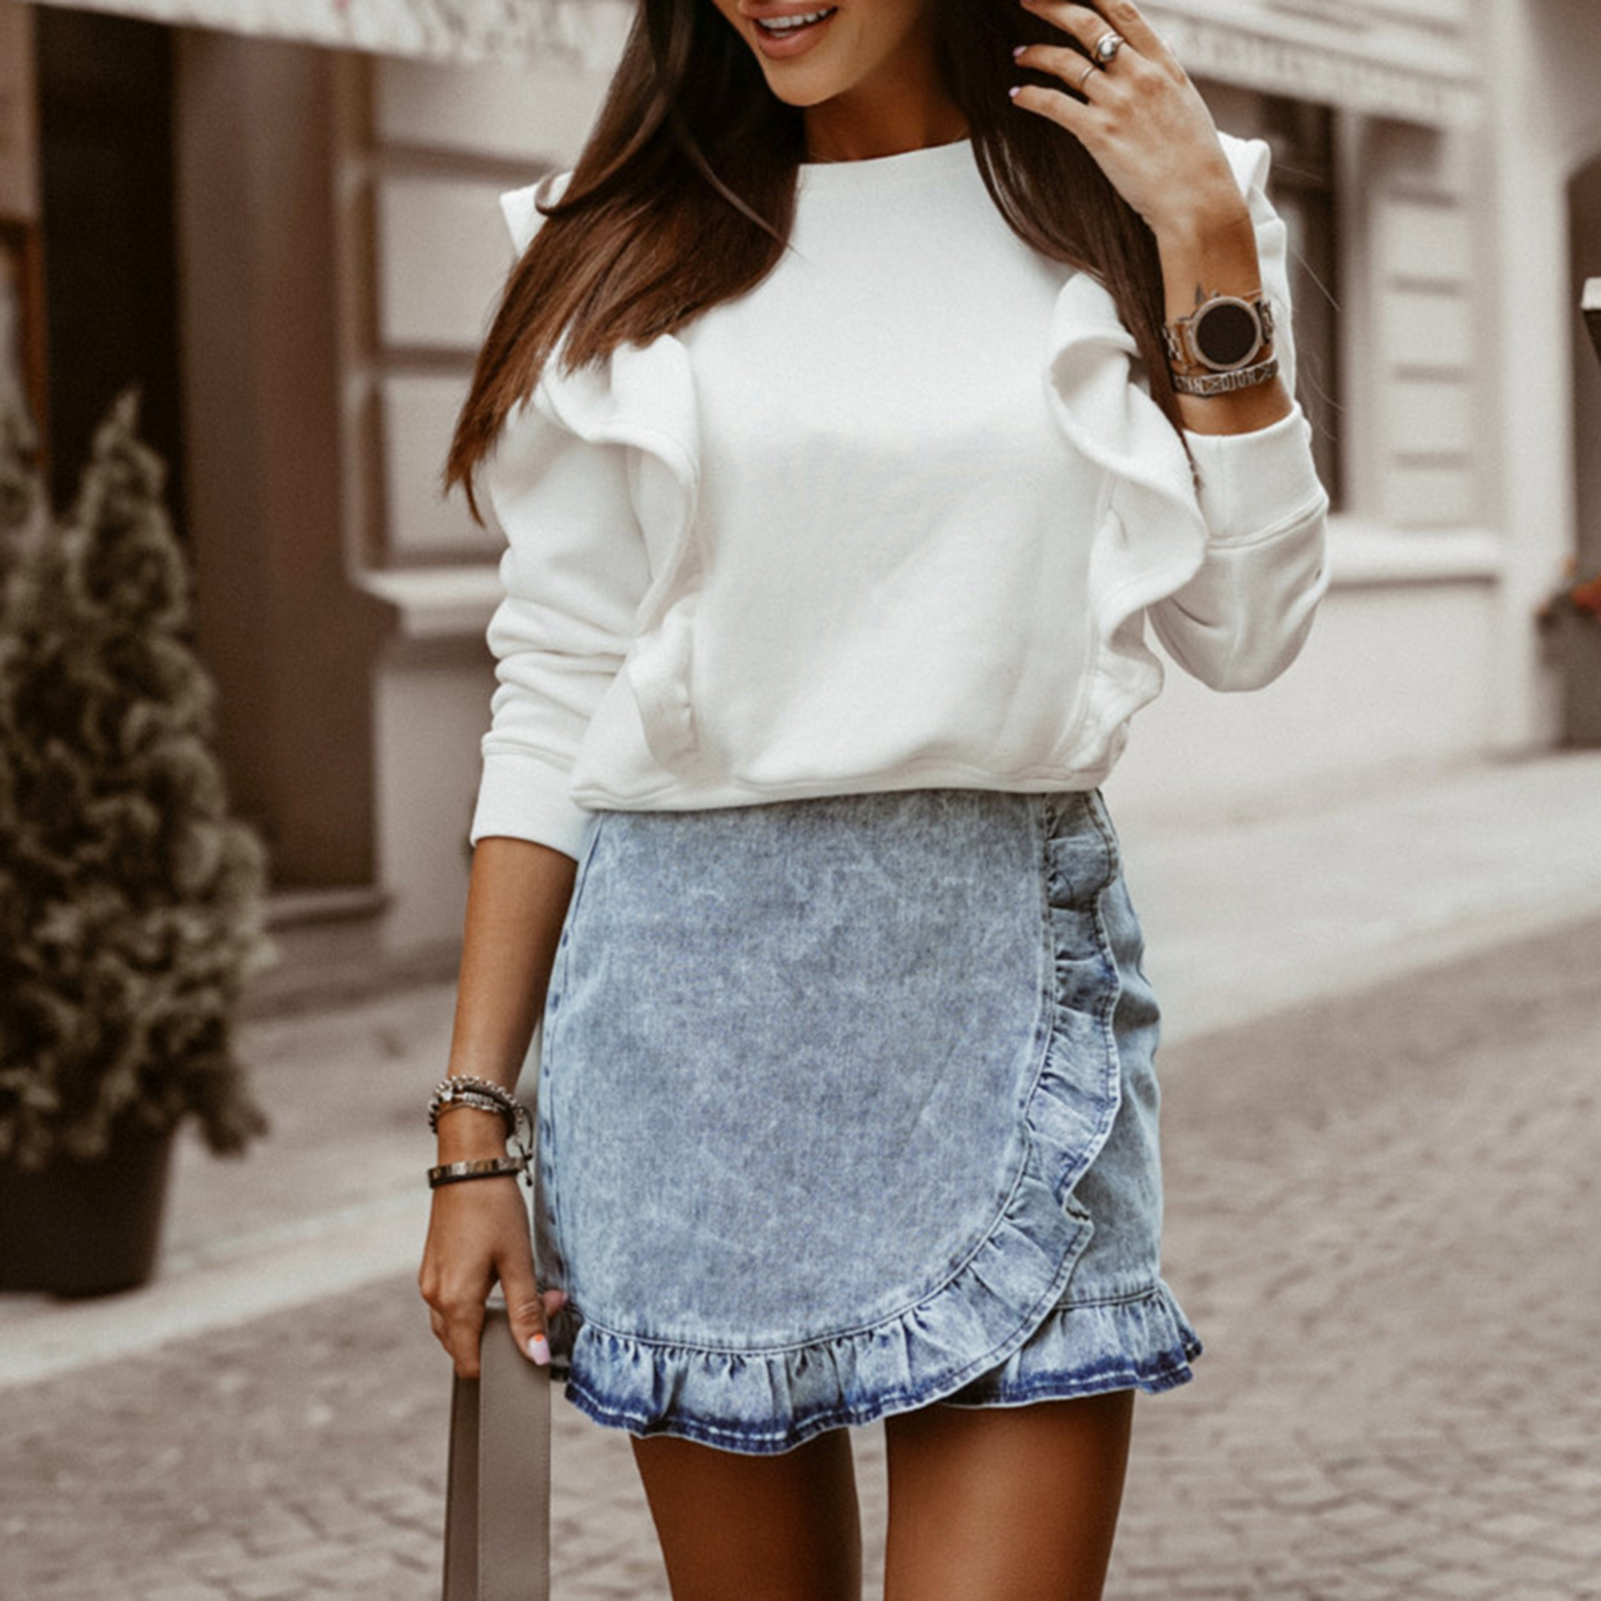 Women Tops And Bloues Autumn Winter Women  Casual O Neck Ruffle Blouse Shirt Long SleeveThick Pullover Top